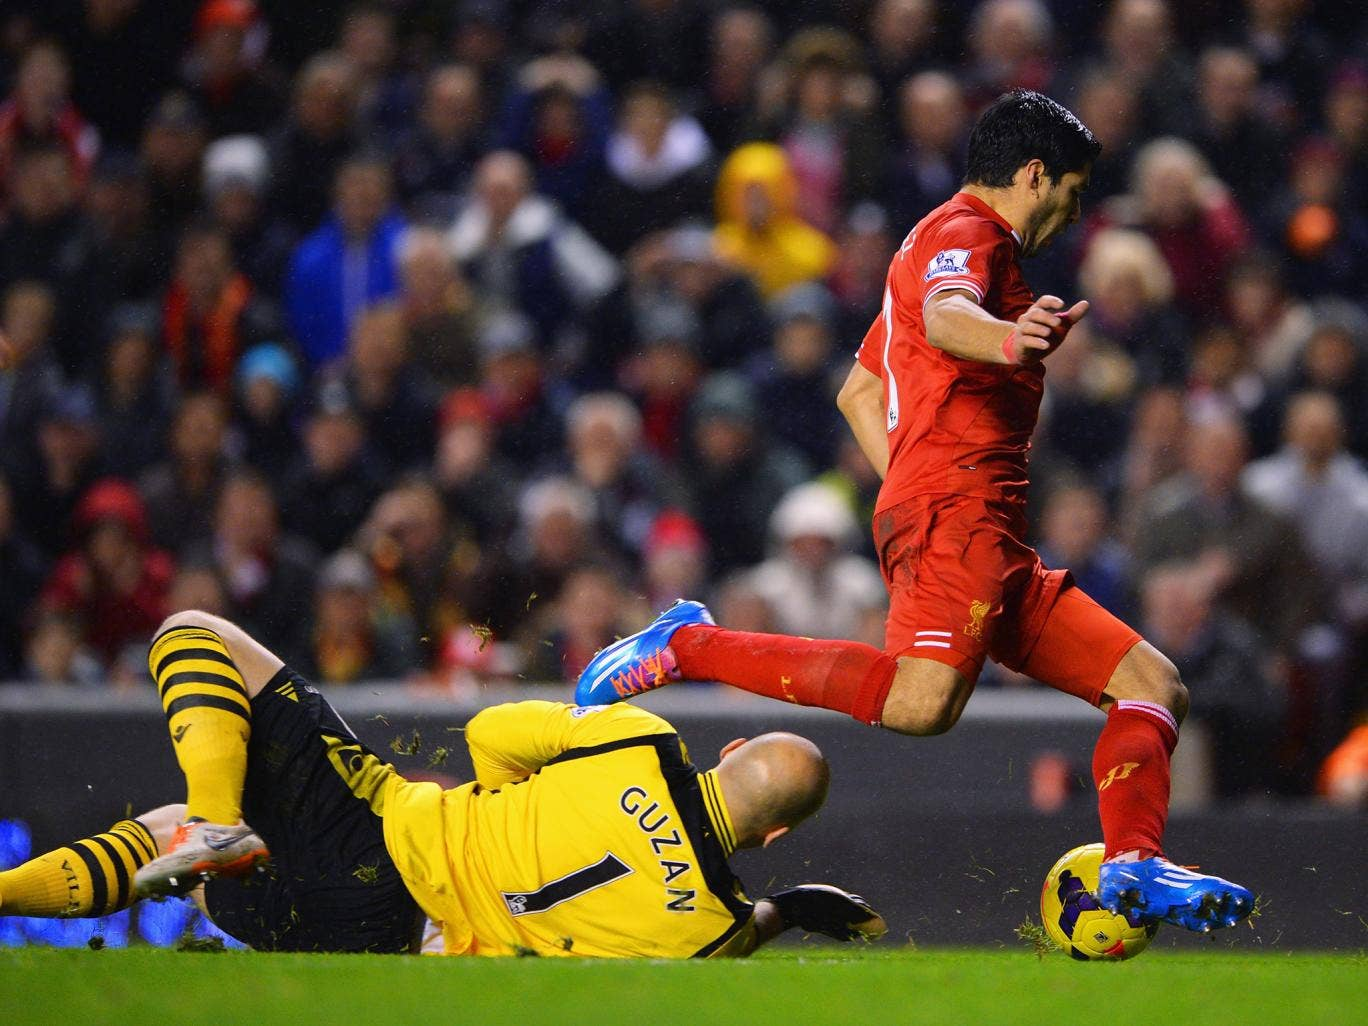 Luis Suarez goes down after Aston Villa goalkeeper Brad Guzan comes charging out of his goal, with referee Jon Moss giving the penalty